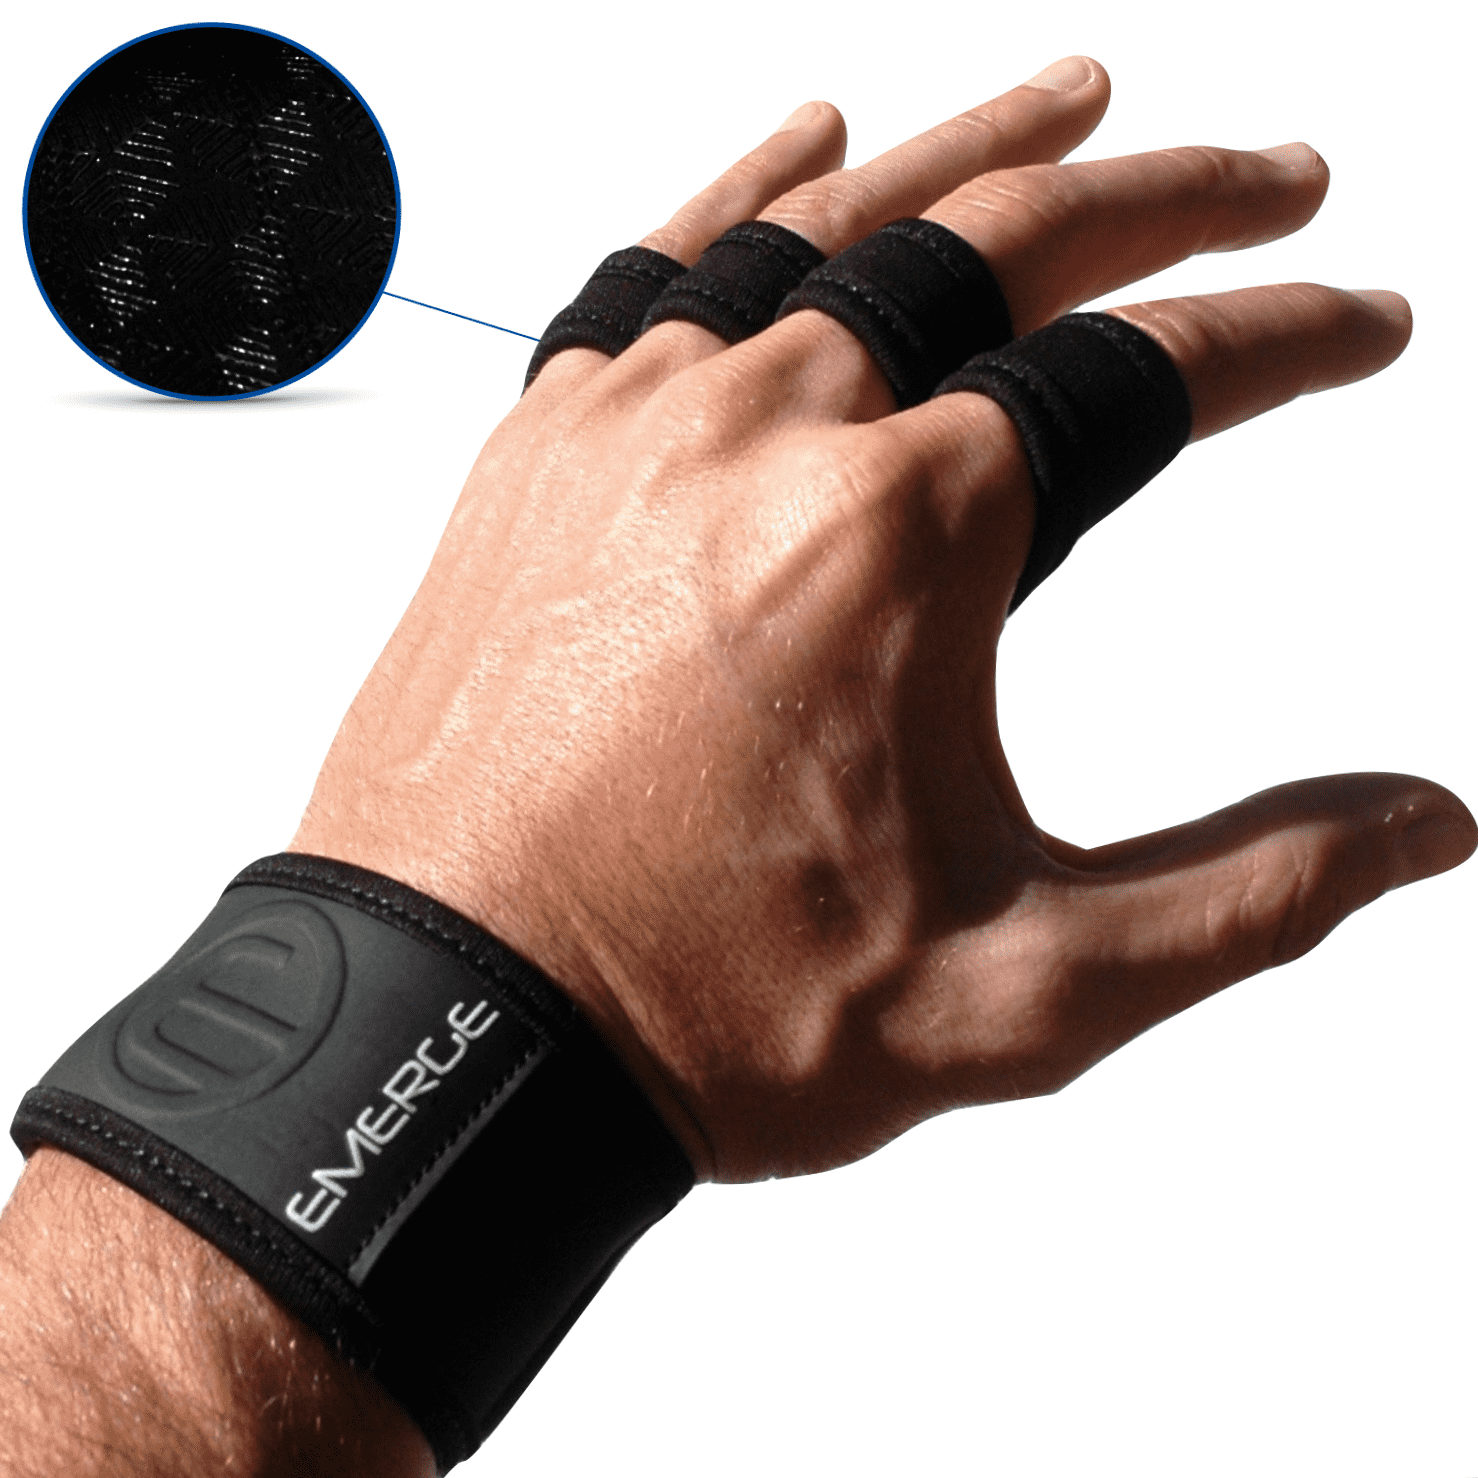 Ox2 Workout Hand Grips Black / Large Fitness - Emergefitnessusa